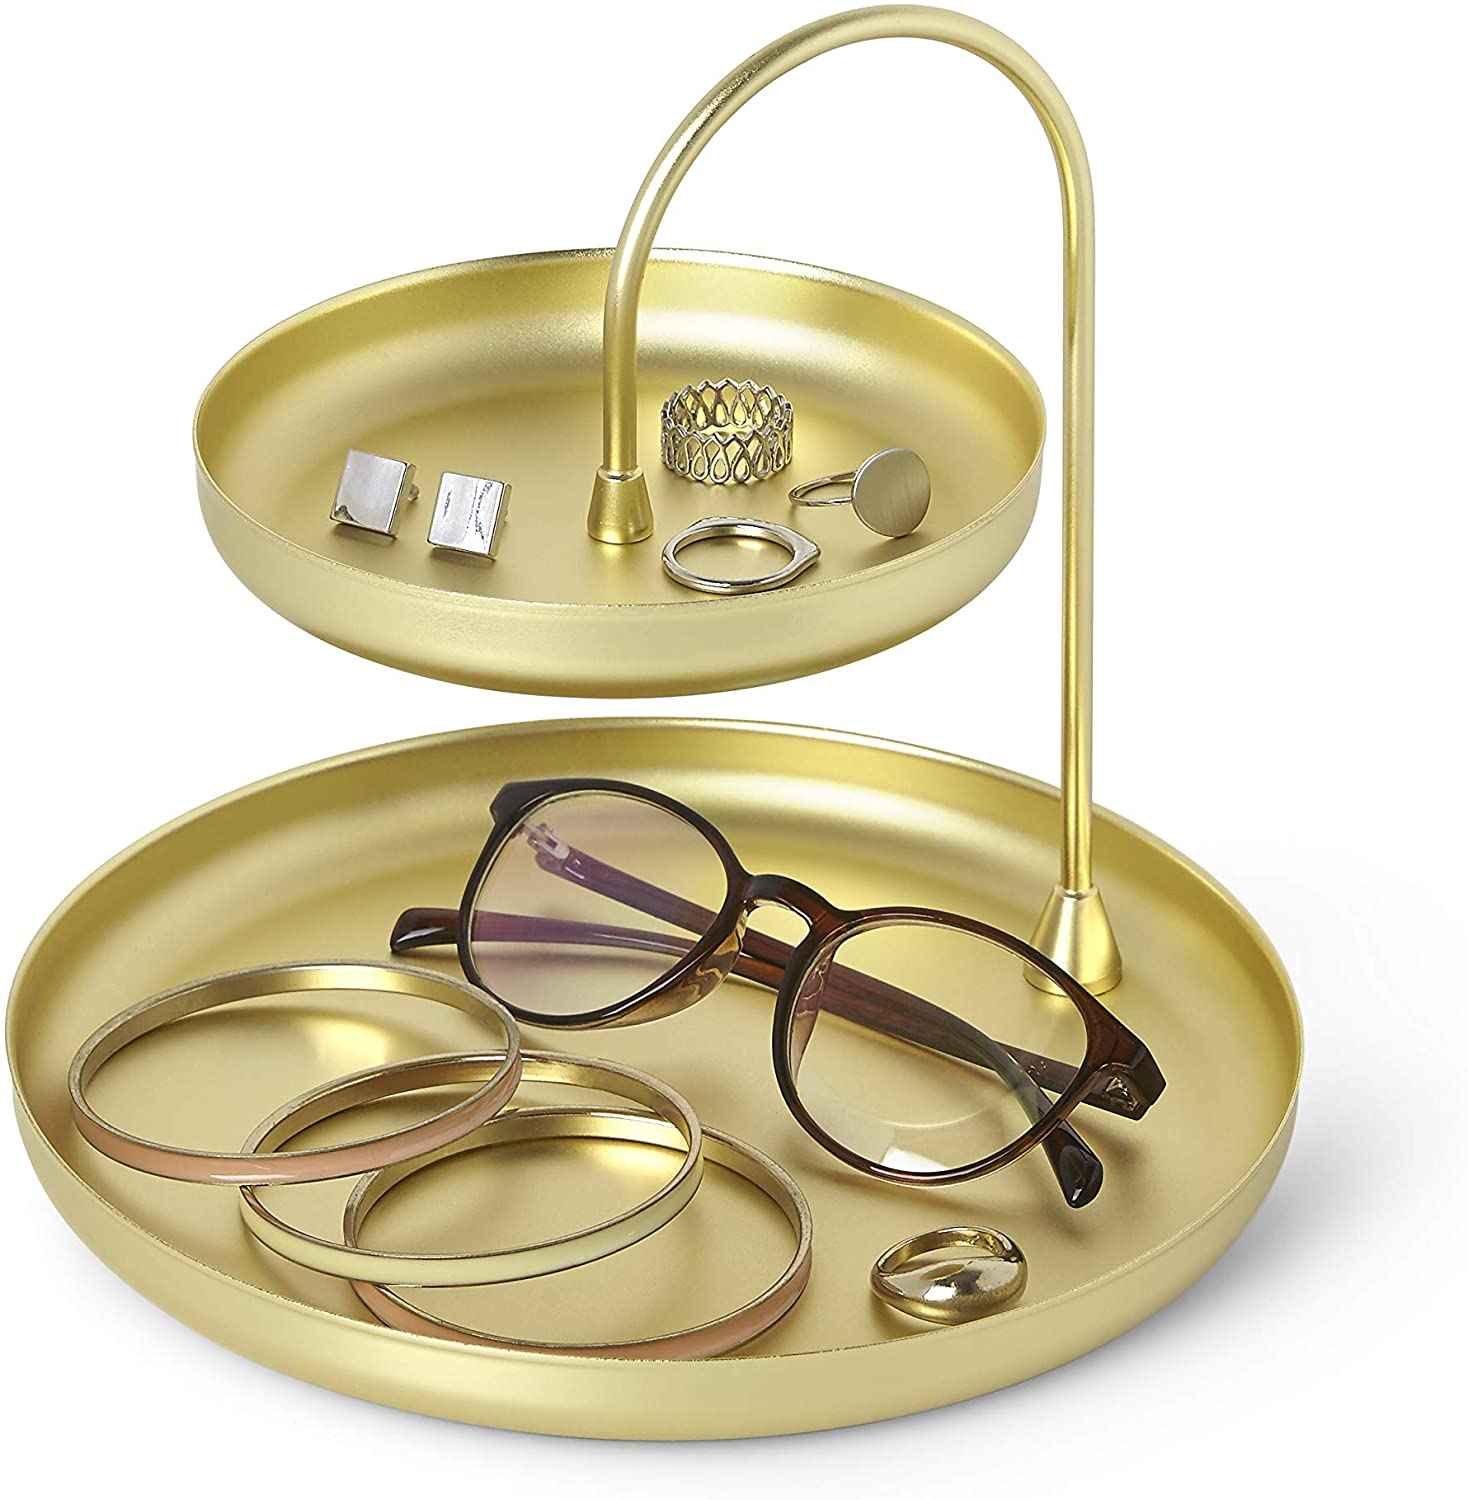 Umbra Poise Large Jewelry Tray, Double Jewelry Tray, Attractive Jewelry Storage You Can Leave Out, Two-Tiered Jewelry Tray, Matte Brass Finish